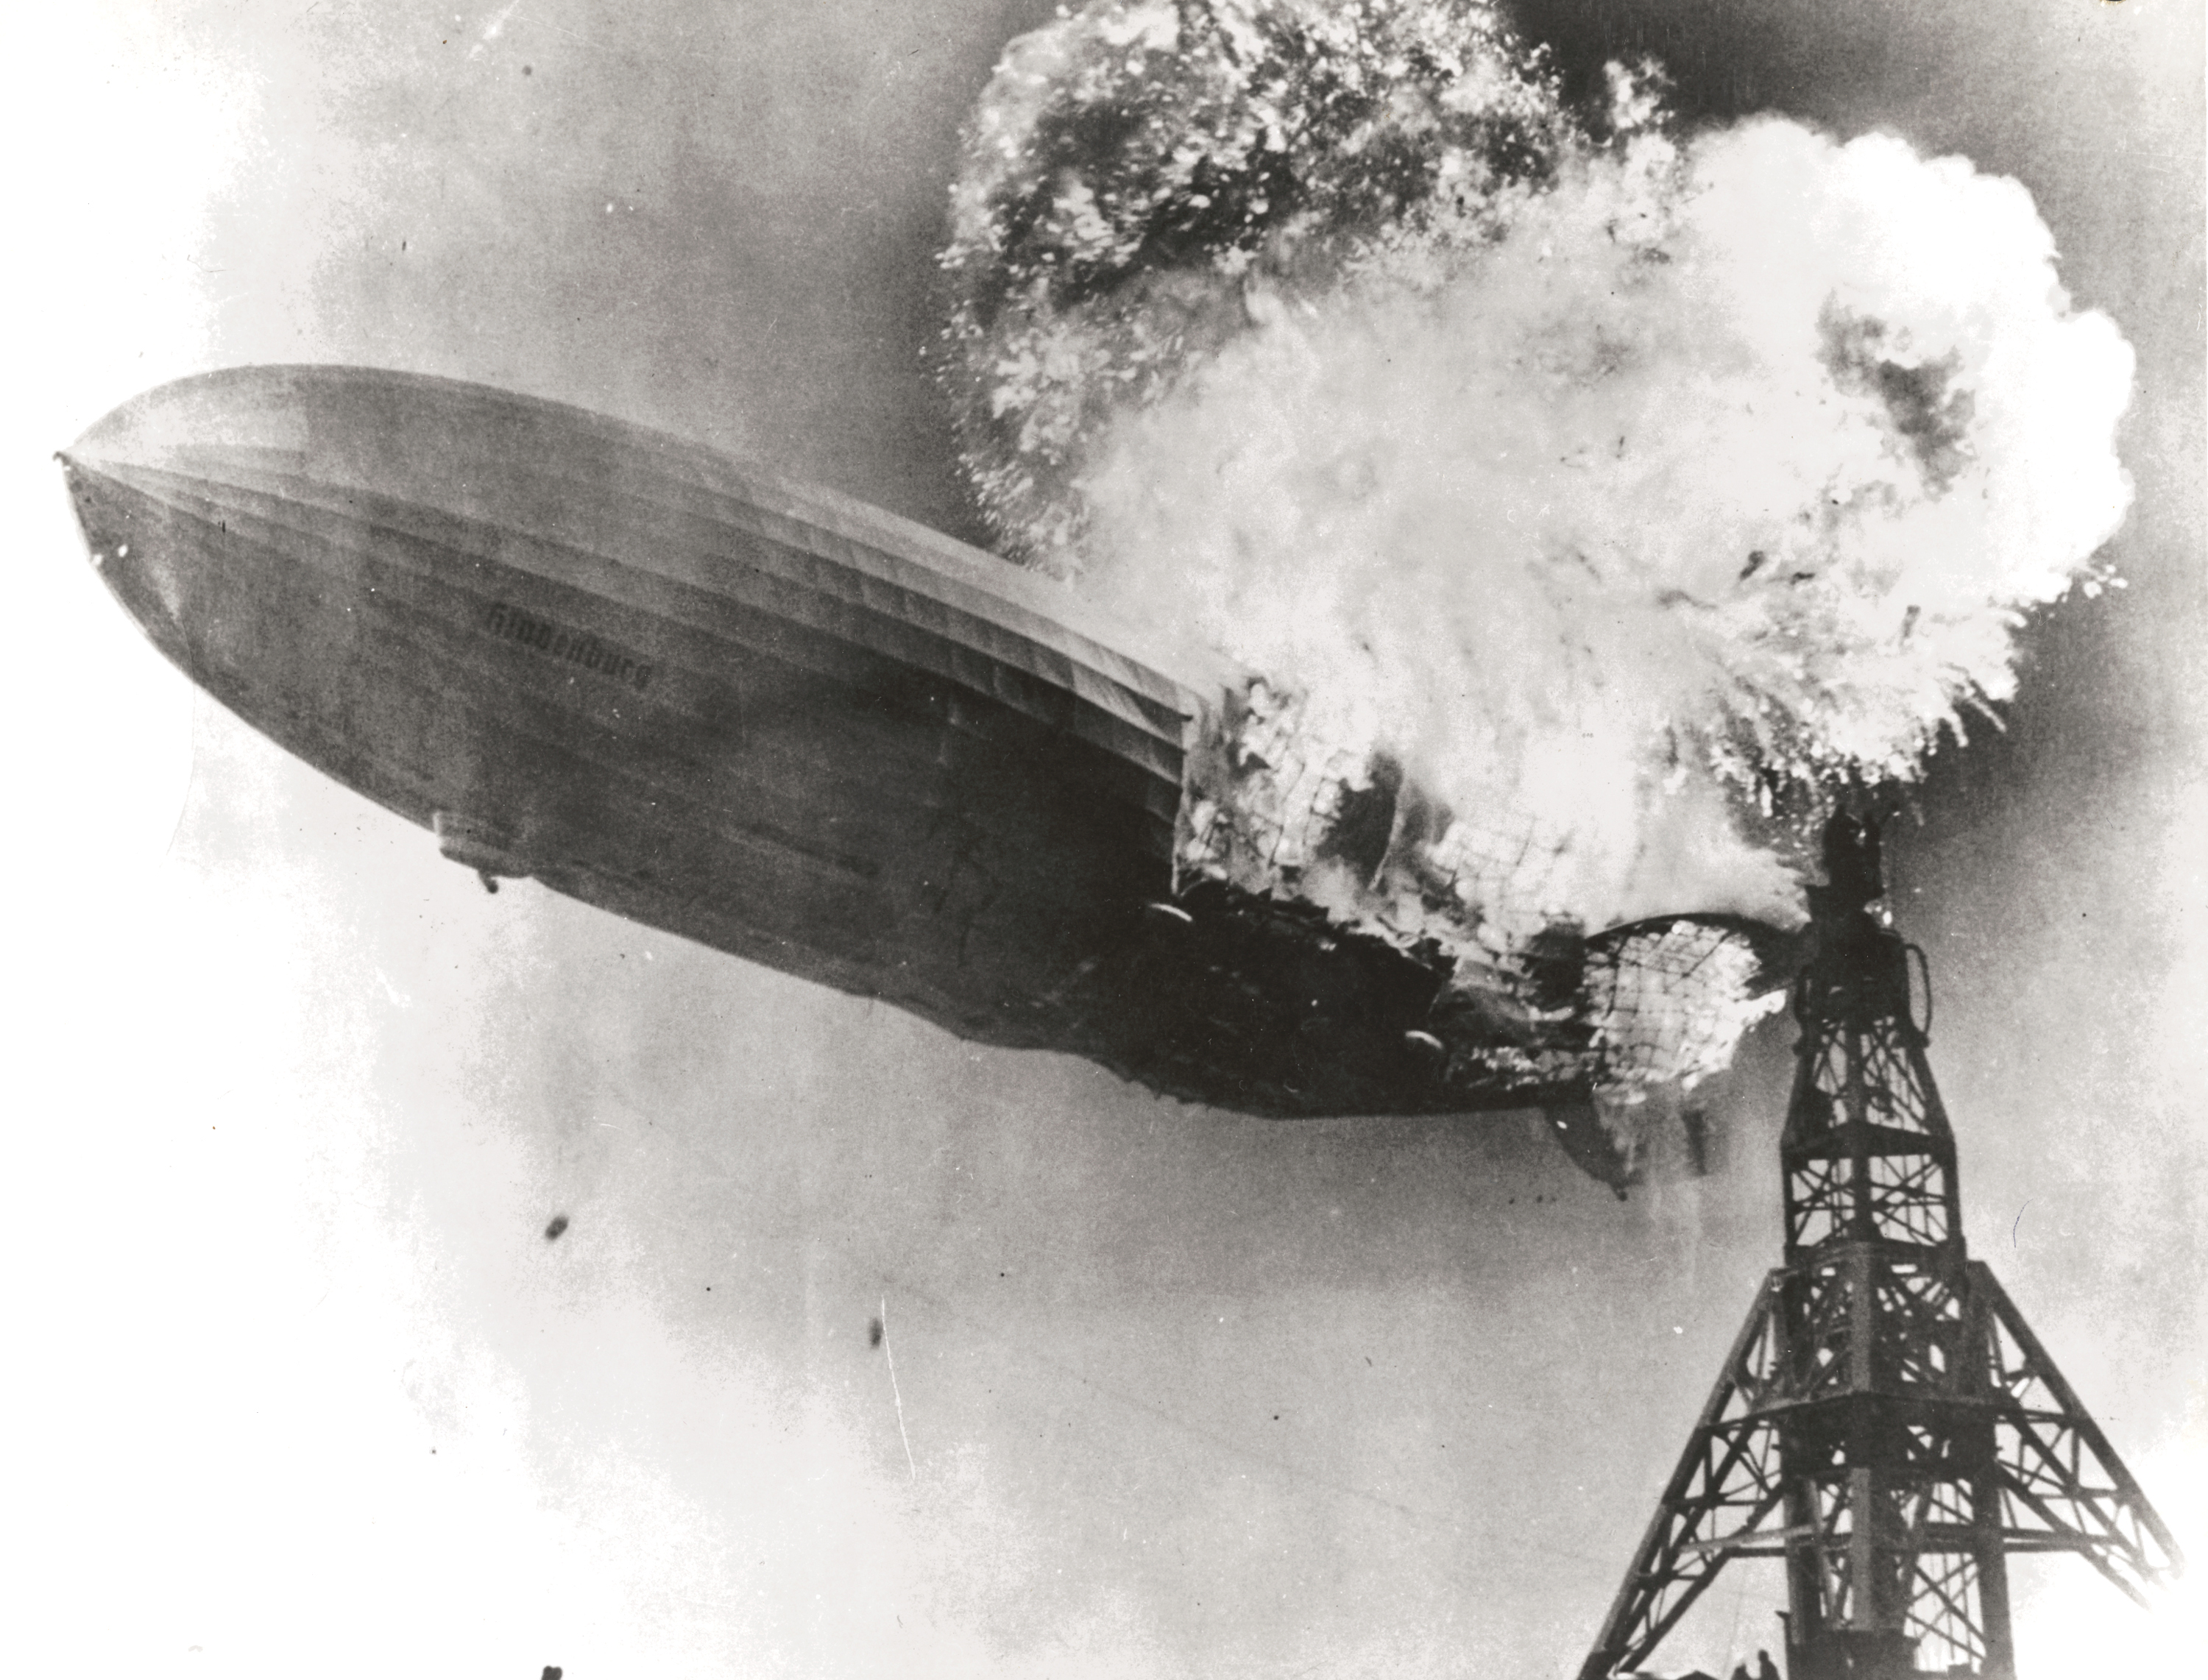 Hindenburg begins to fall seconds after catching fire